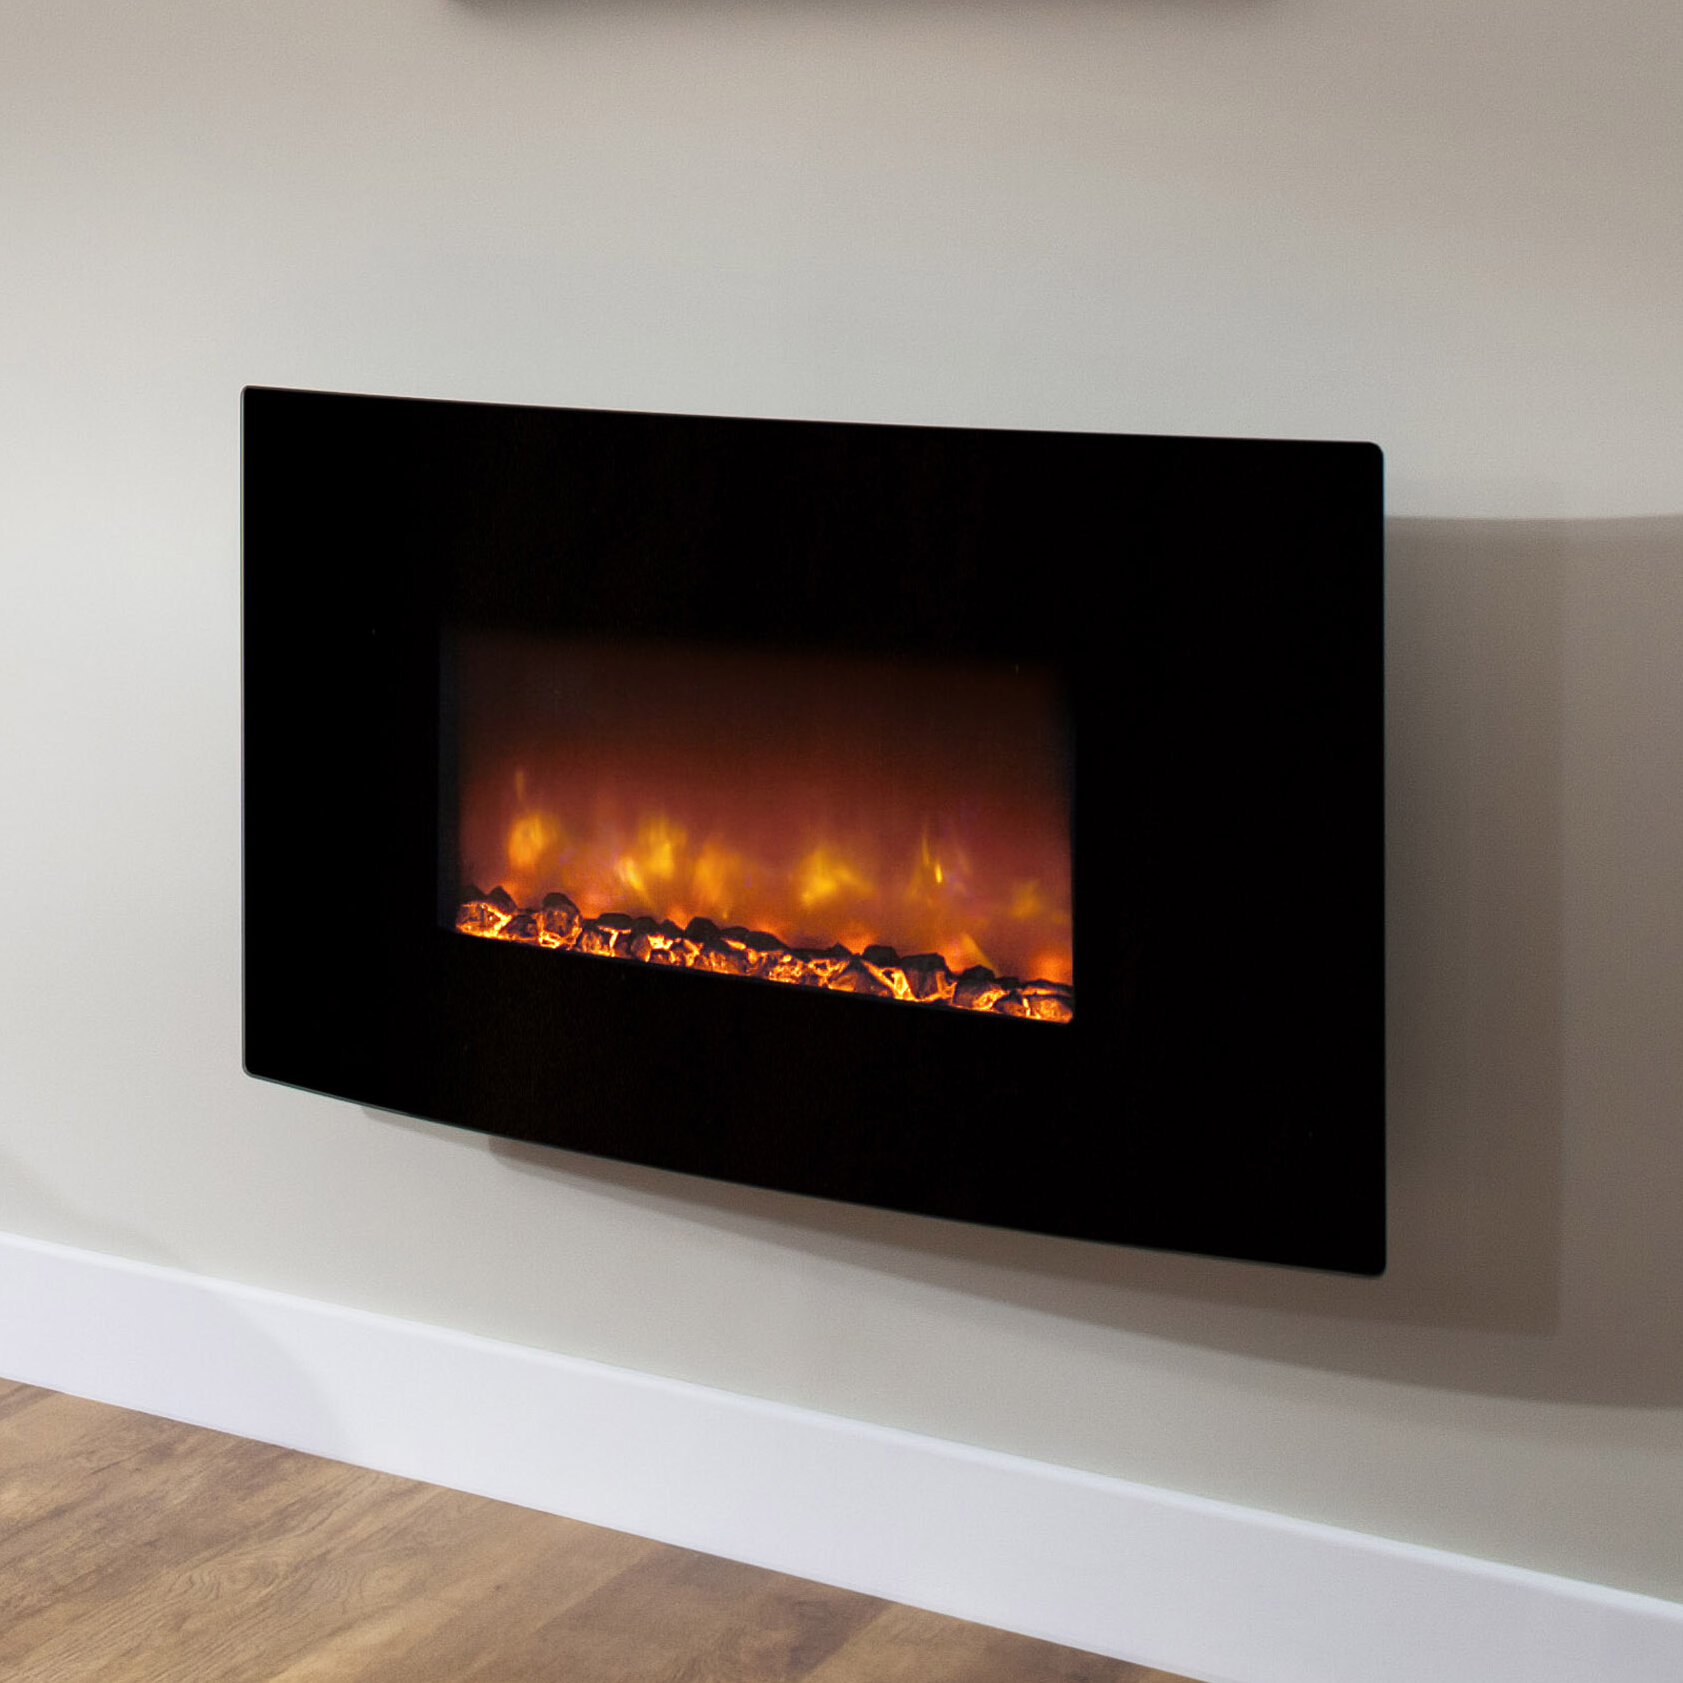 mounted fireplaces wall talking design fireplace image book ideas style electric of